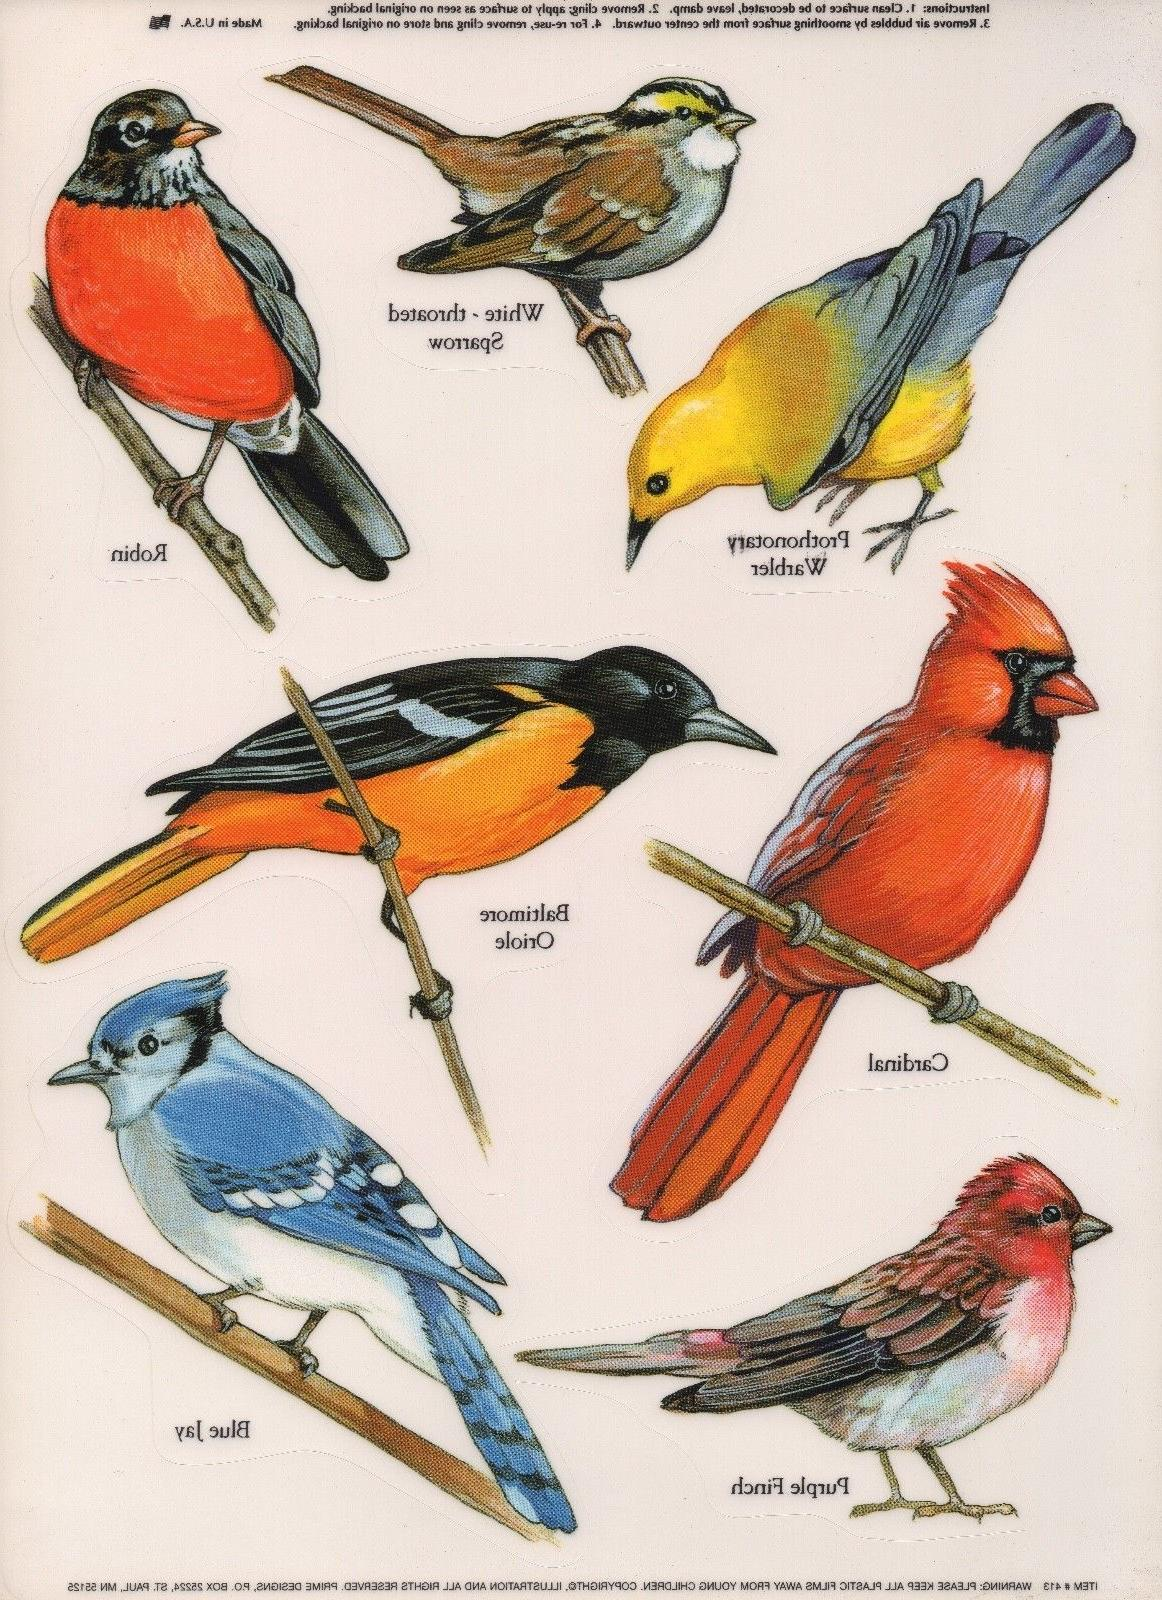 Bird Window Decals / Stickers / Clings in Color! NEW! Great